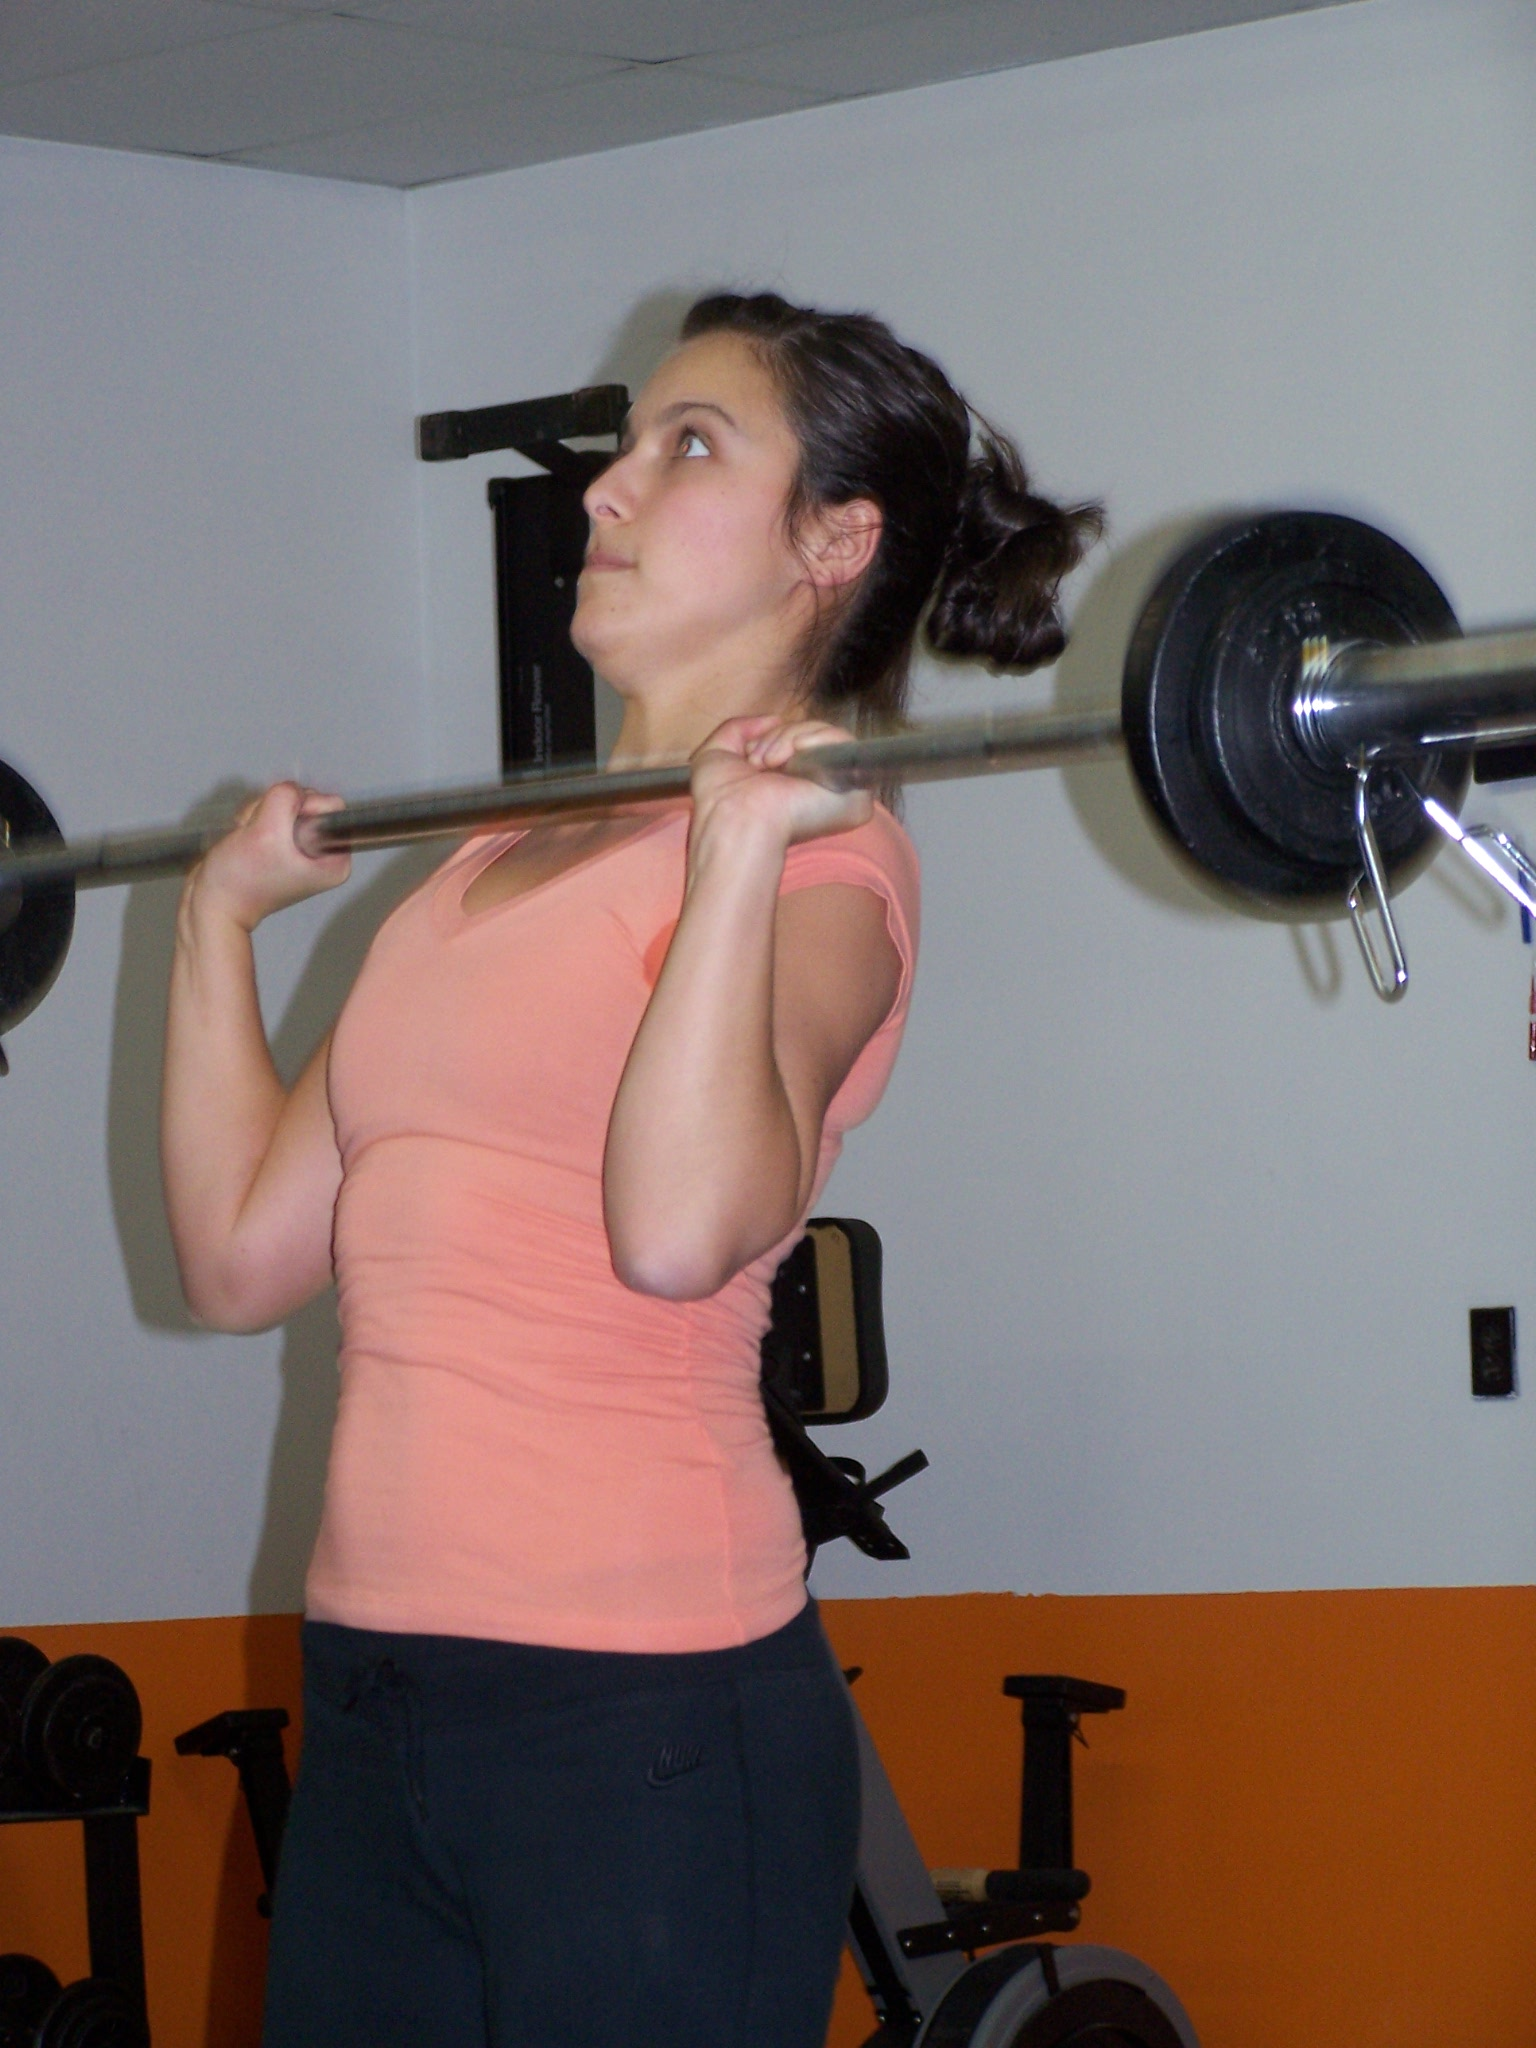 Marie-Christine working on her presses